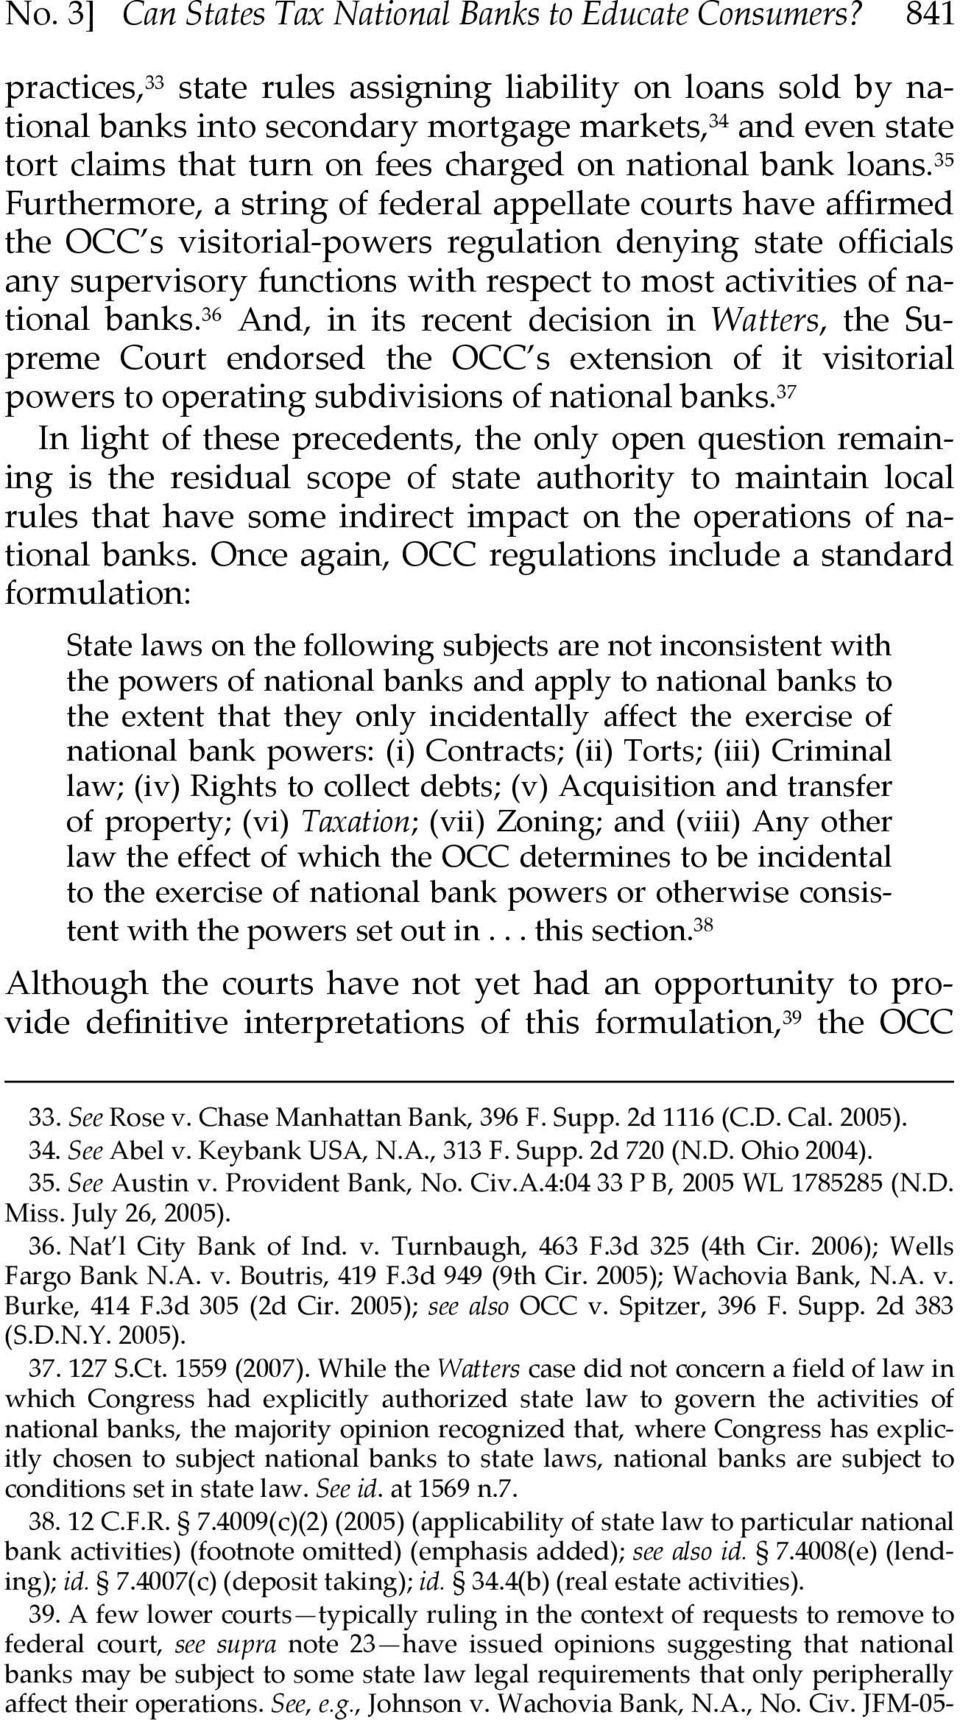 35 Furthermore, a string of federal appellate courts have affirmed the OCC s visitorial powers regulation denying state officials any supervisory functions with respect to most activities of national